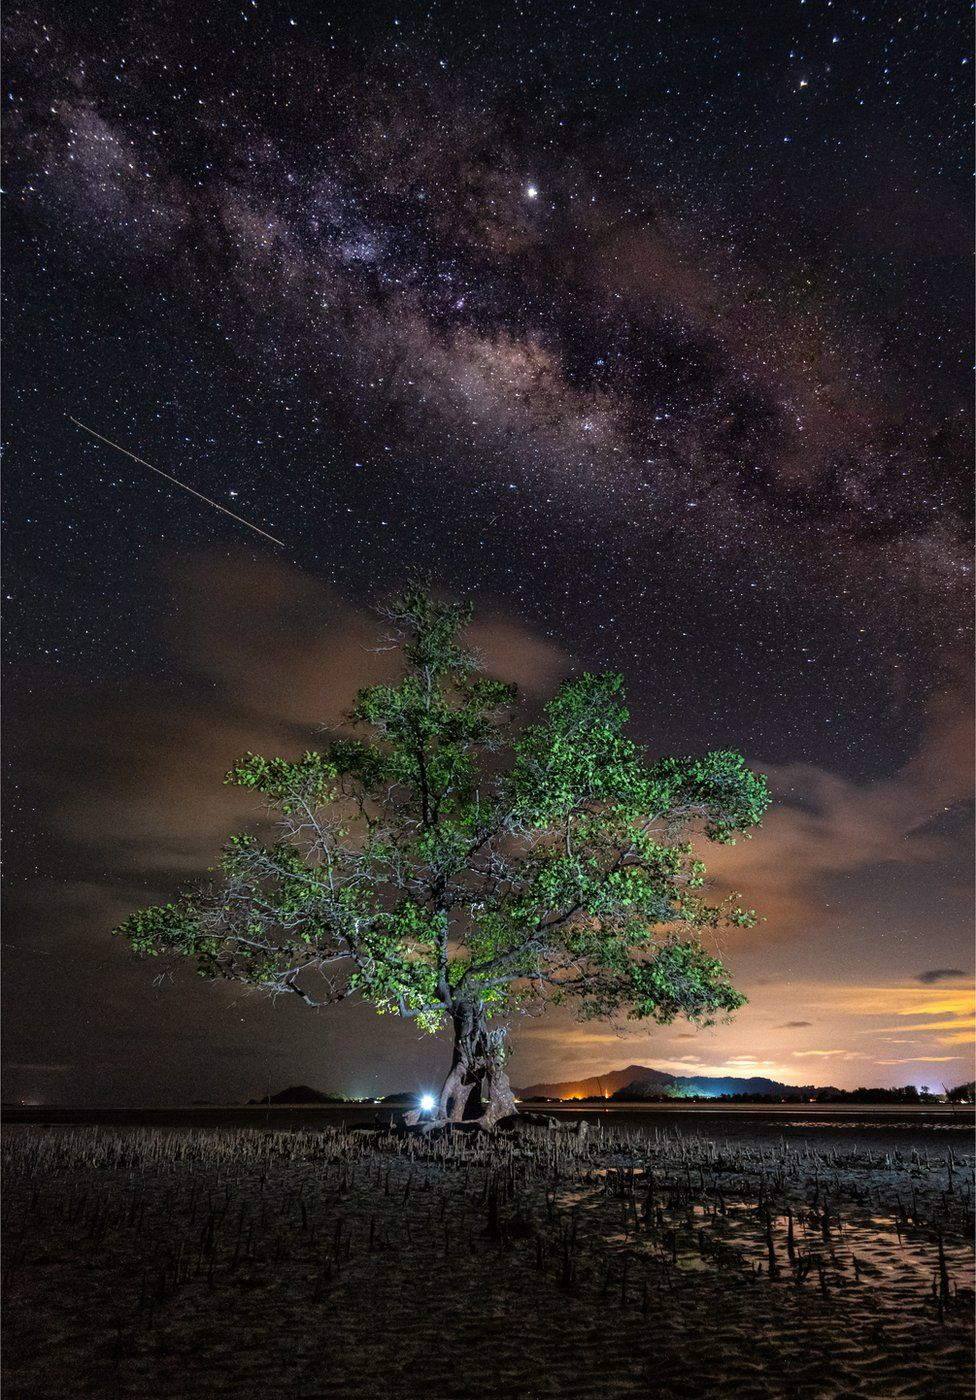 Mangrove forests: Photography winners show beauty of ecosystems thumbnail